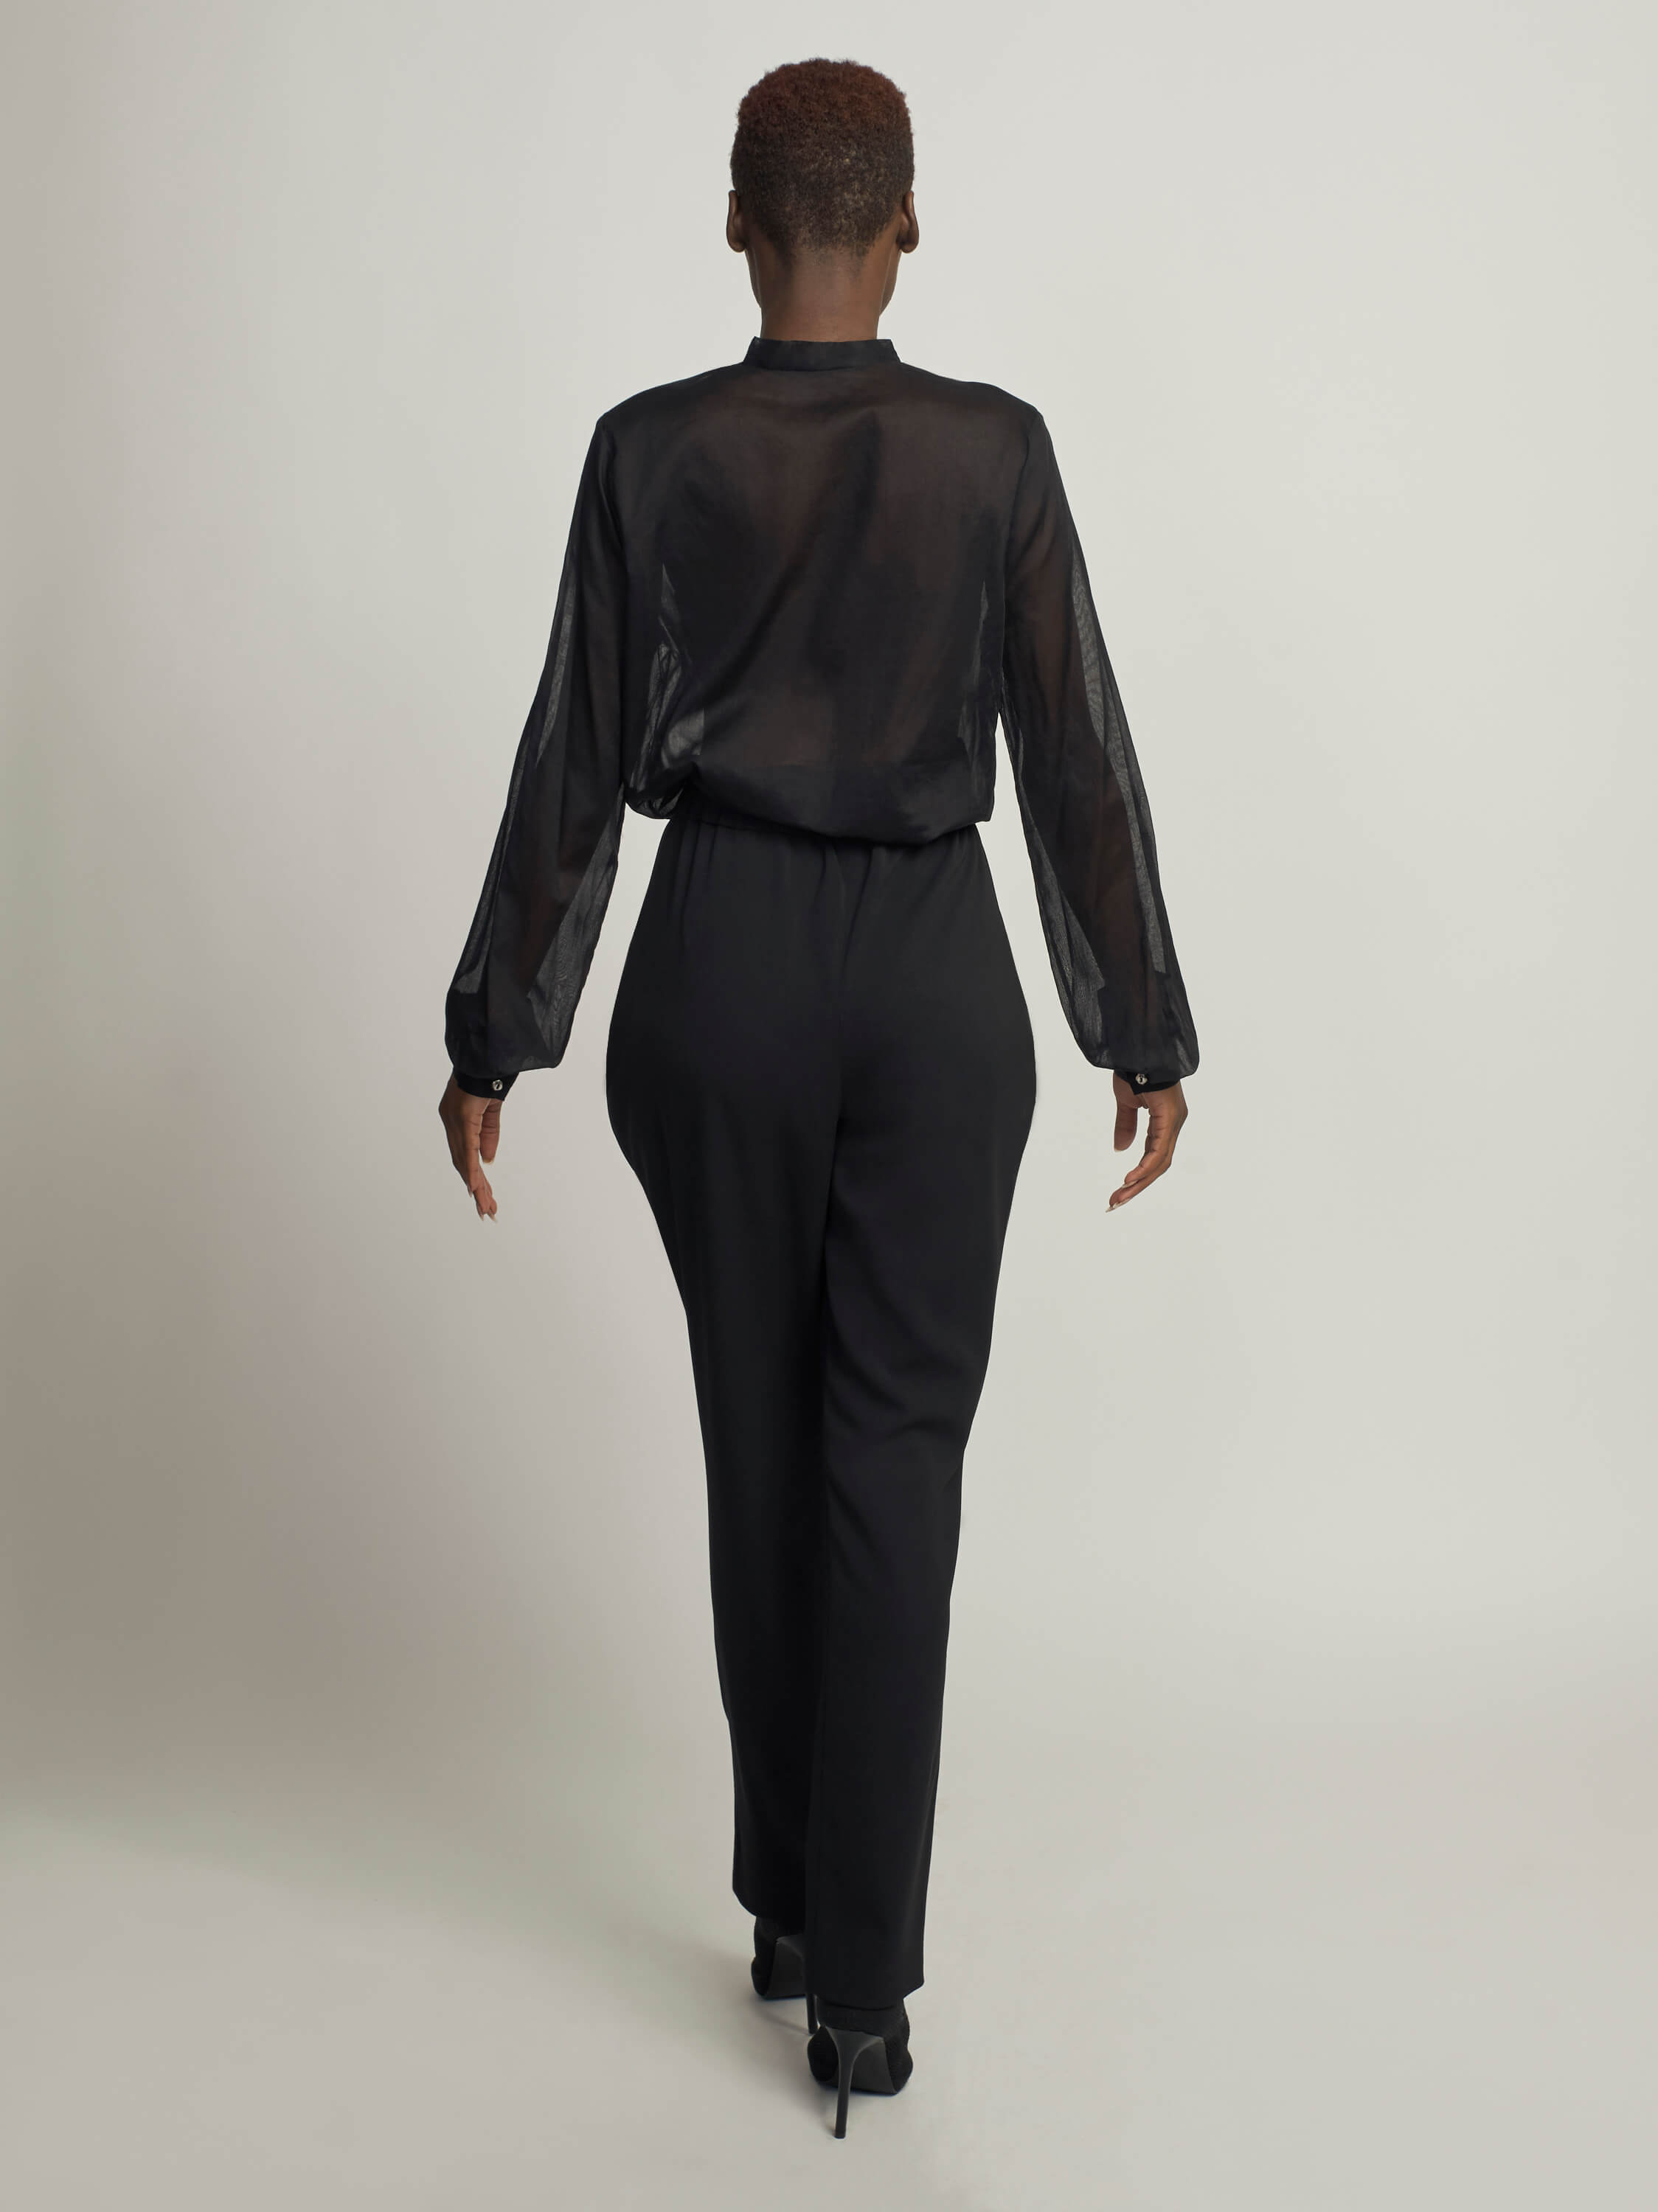 Lucent Blouse, Black - Jody Tjan